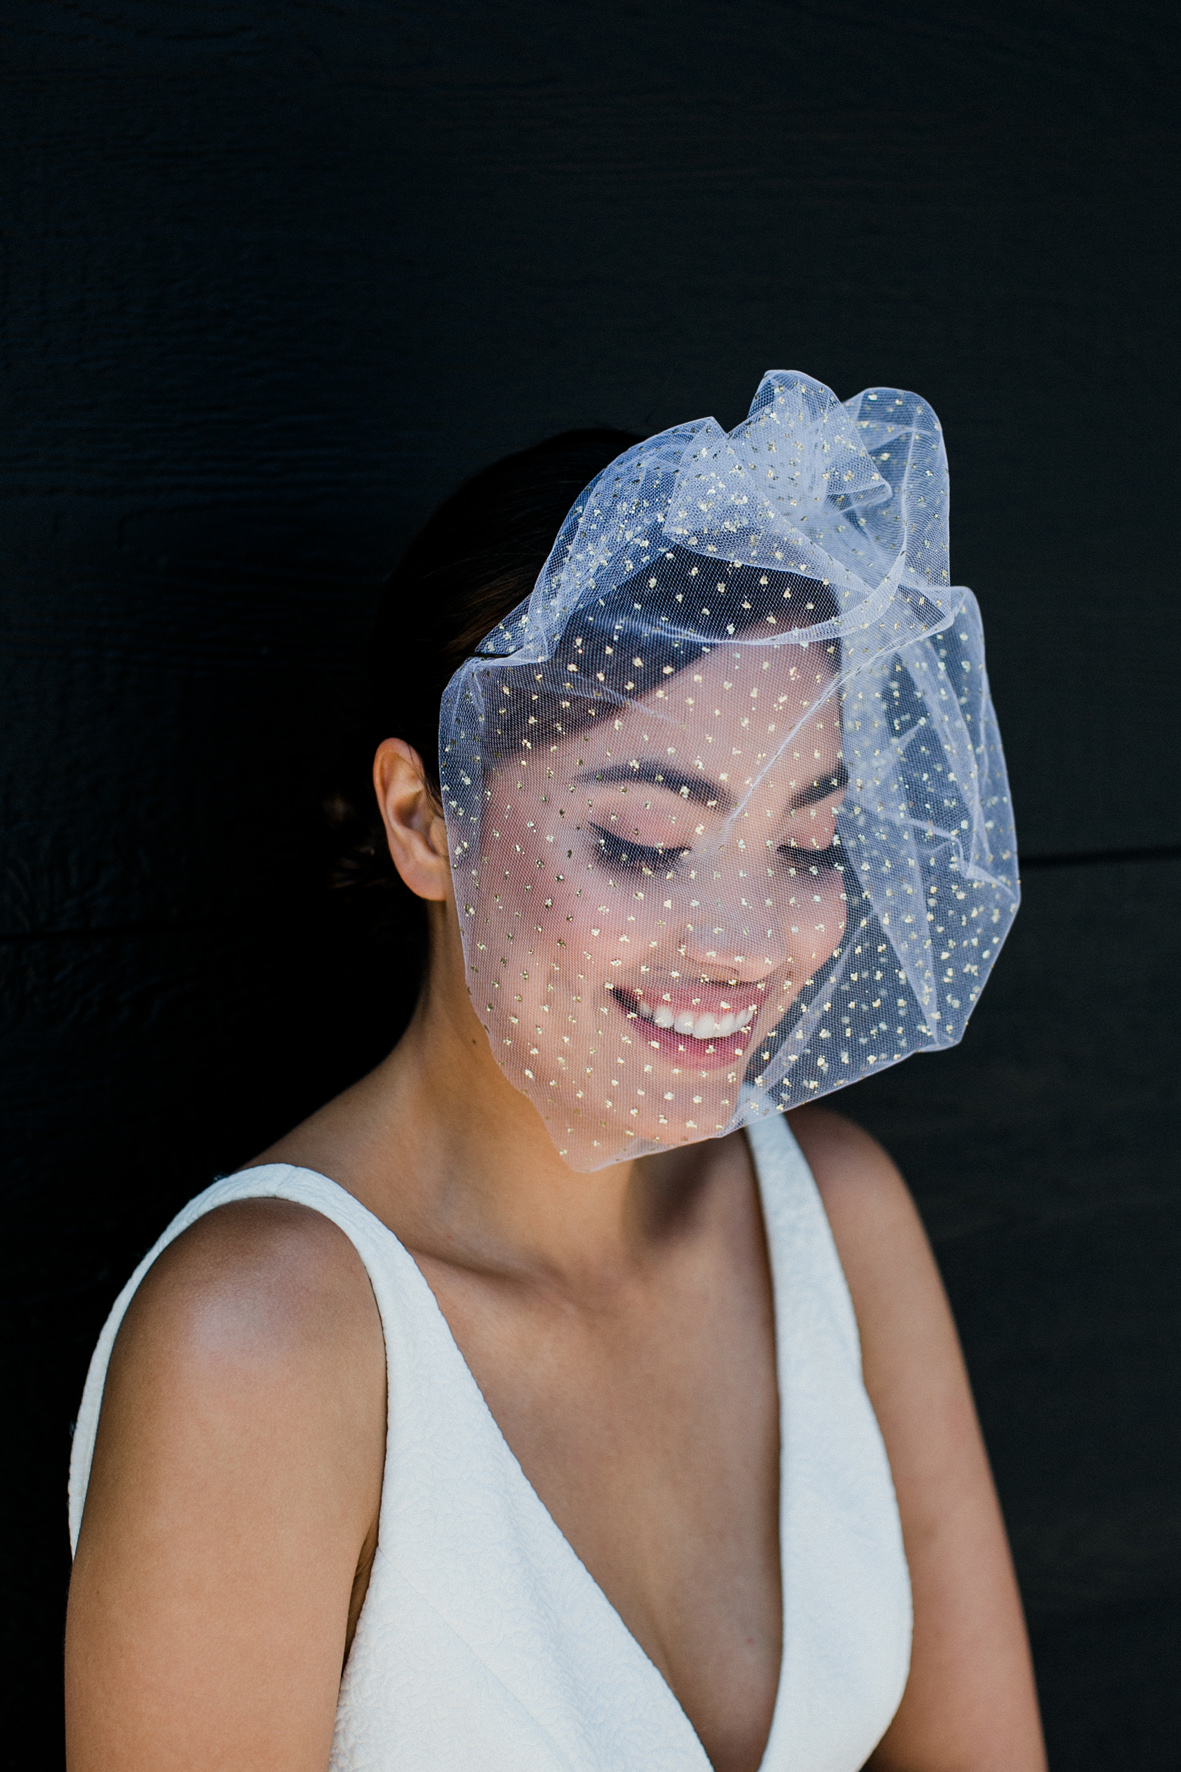 penny birdcage veil 4 hushed-commotion-fall-2018-amber-gress-0196-.jpg